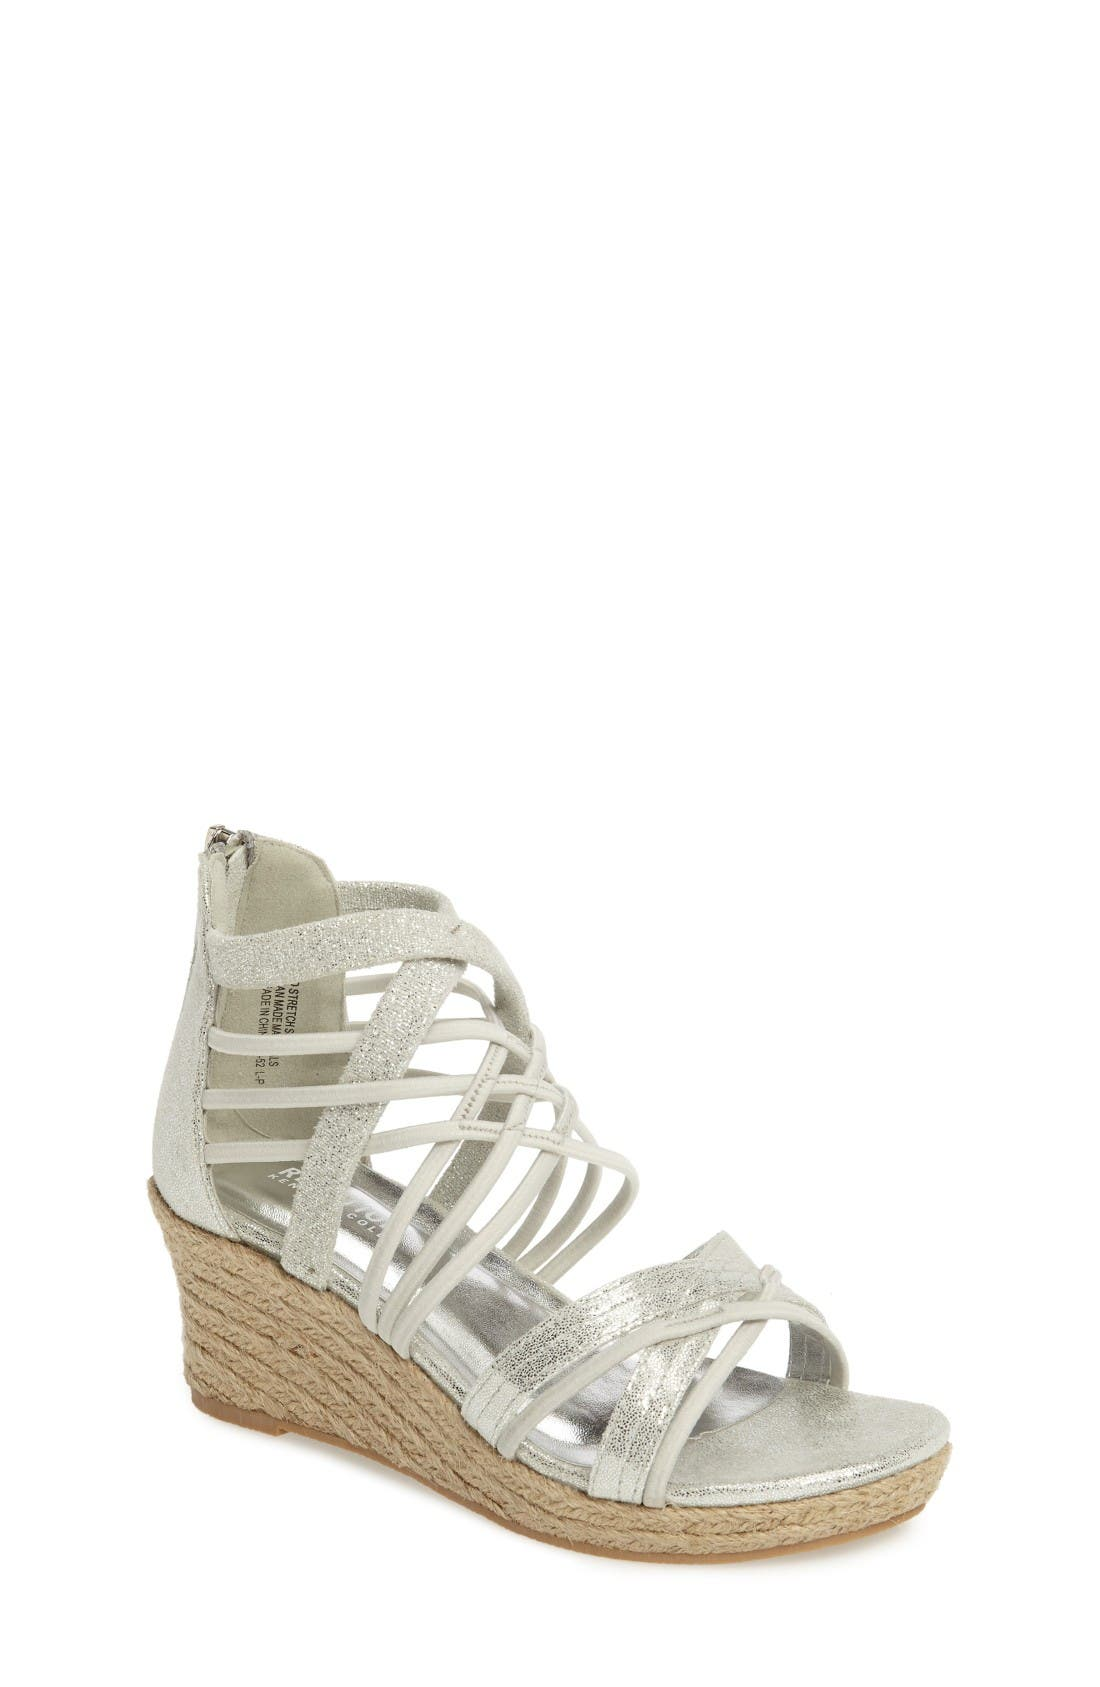 Kenneth Cole New York Reed Platform Wedge Sandal (Toddler, Little Kid & Big Kid)